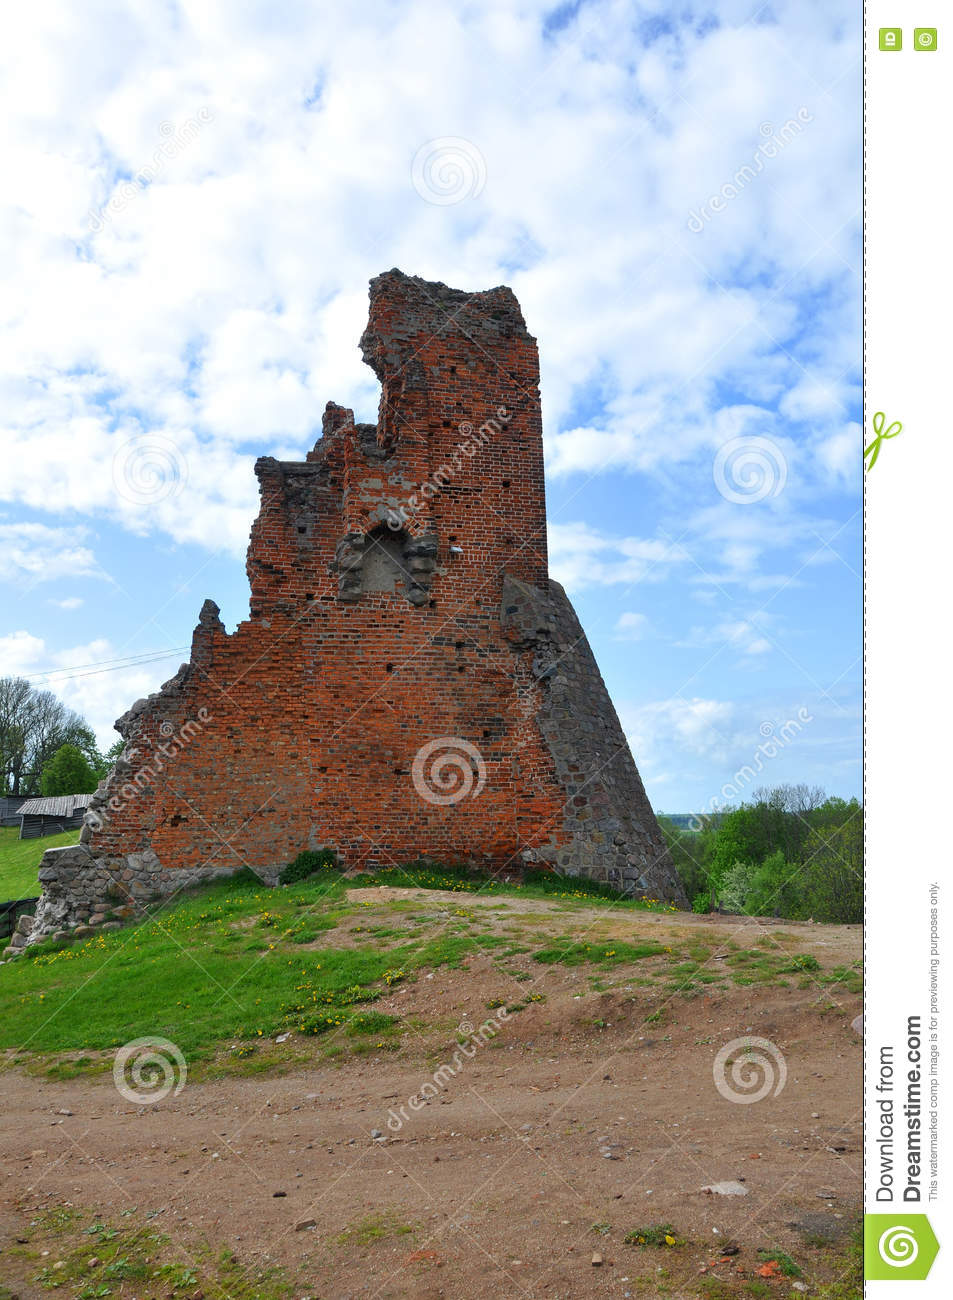 The ruins of the castle in the city of Novogrudok. Belarus.